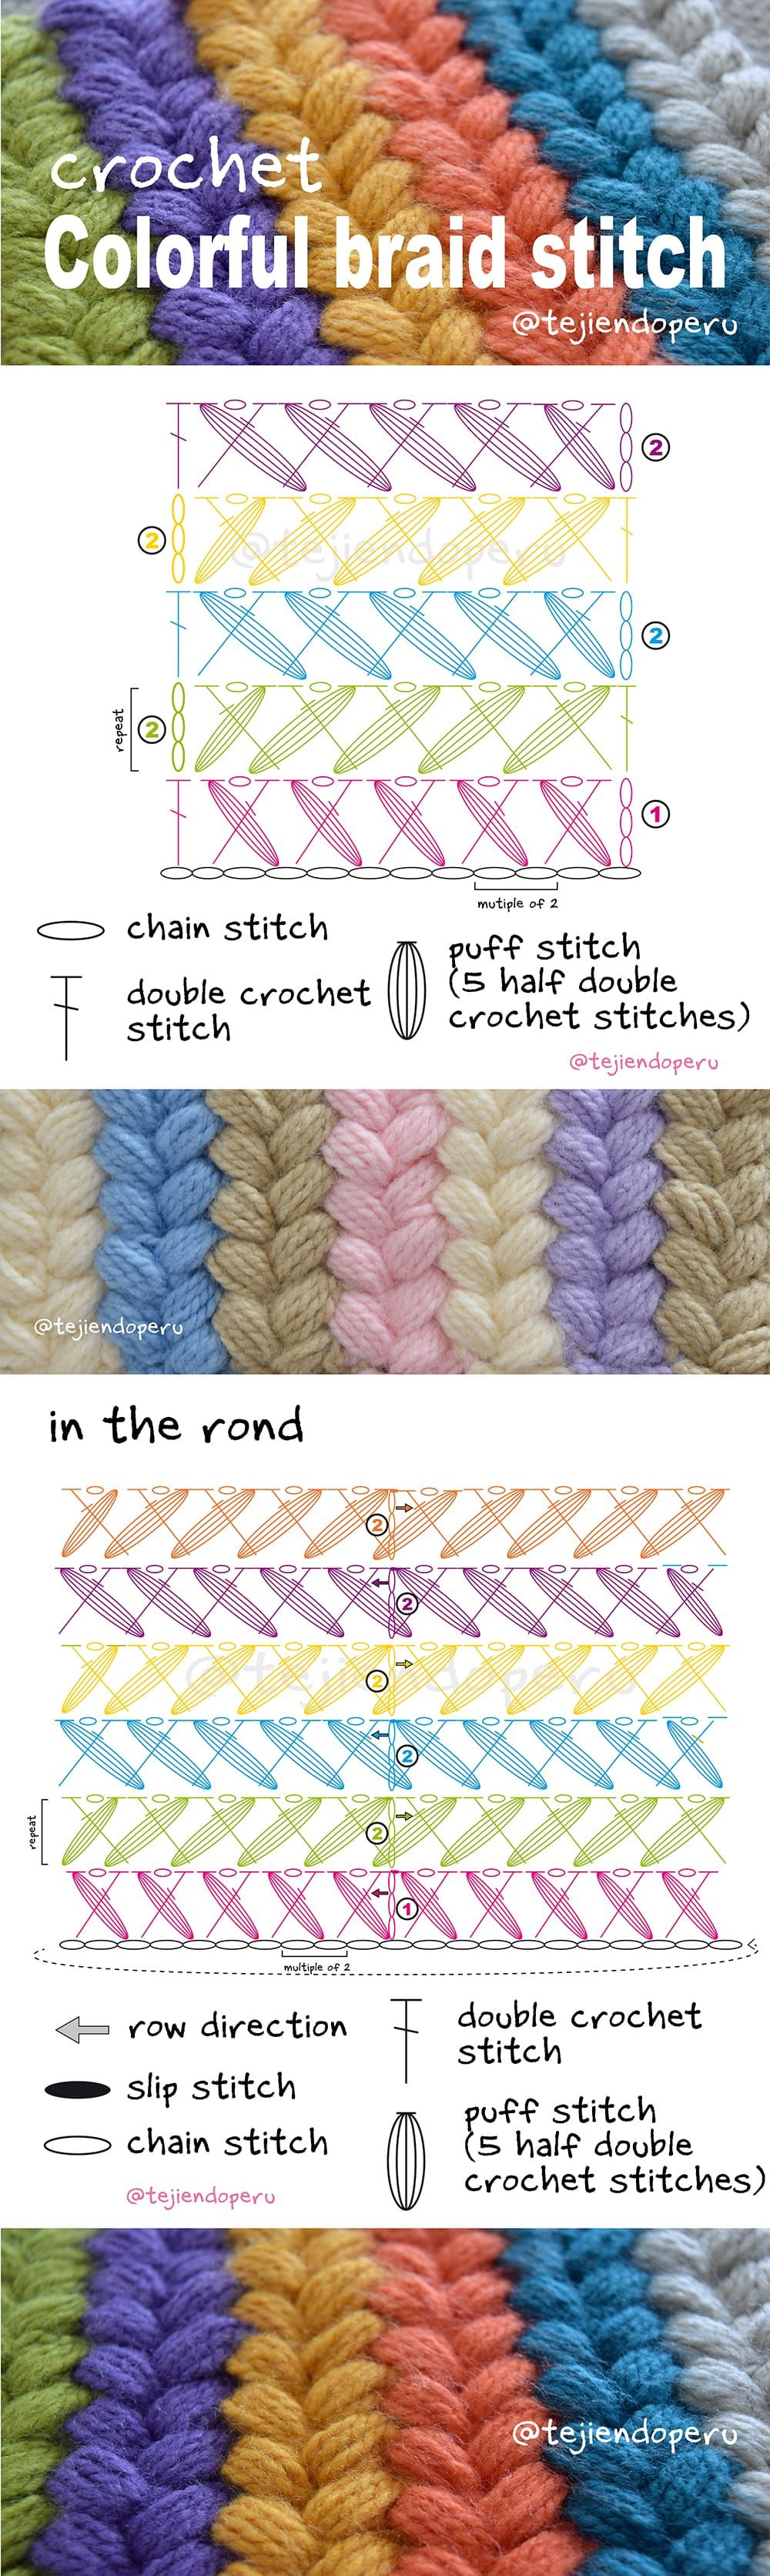 Colorful braid crochet stitch | Crochet | Pinterest | Trenza, Perú y ...